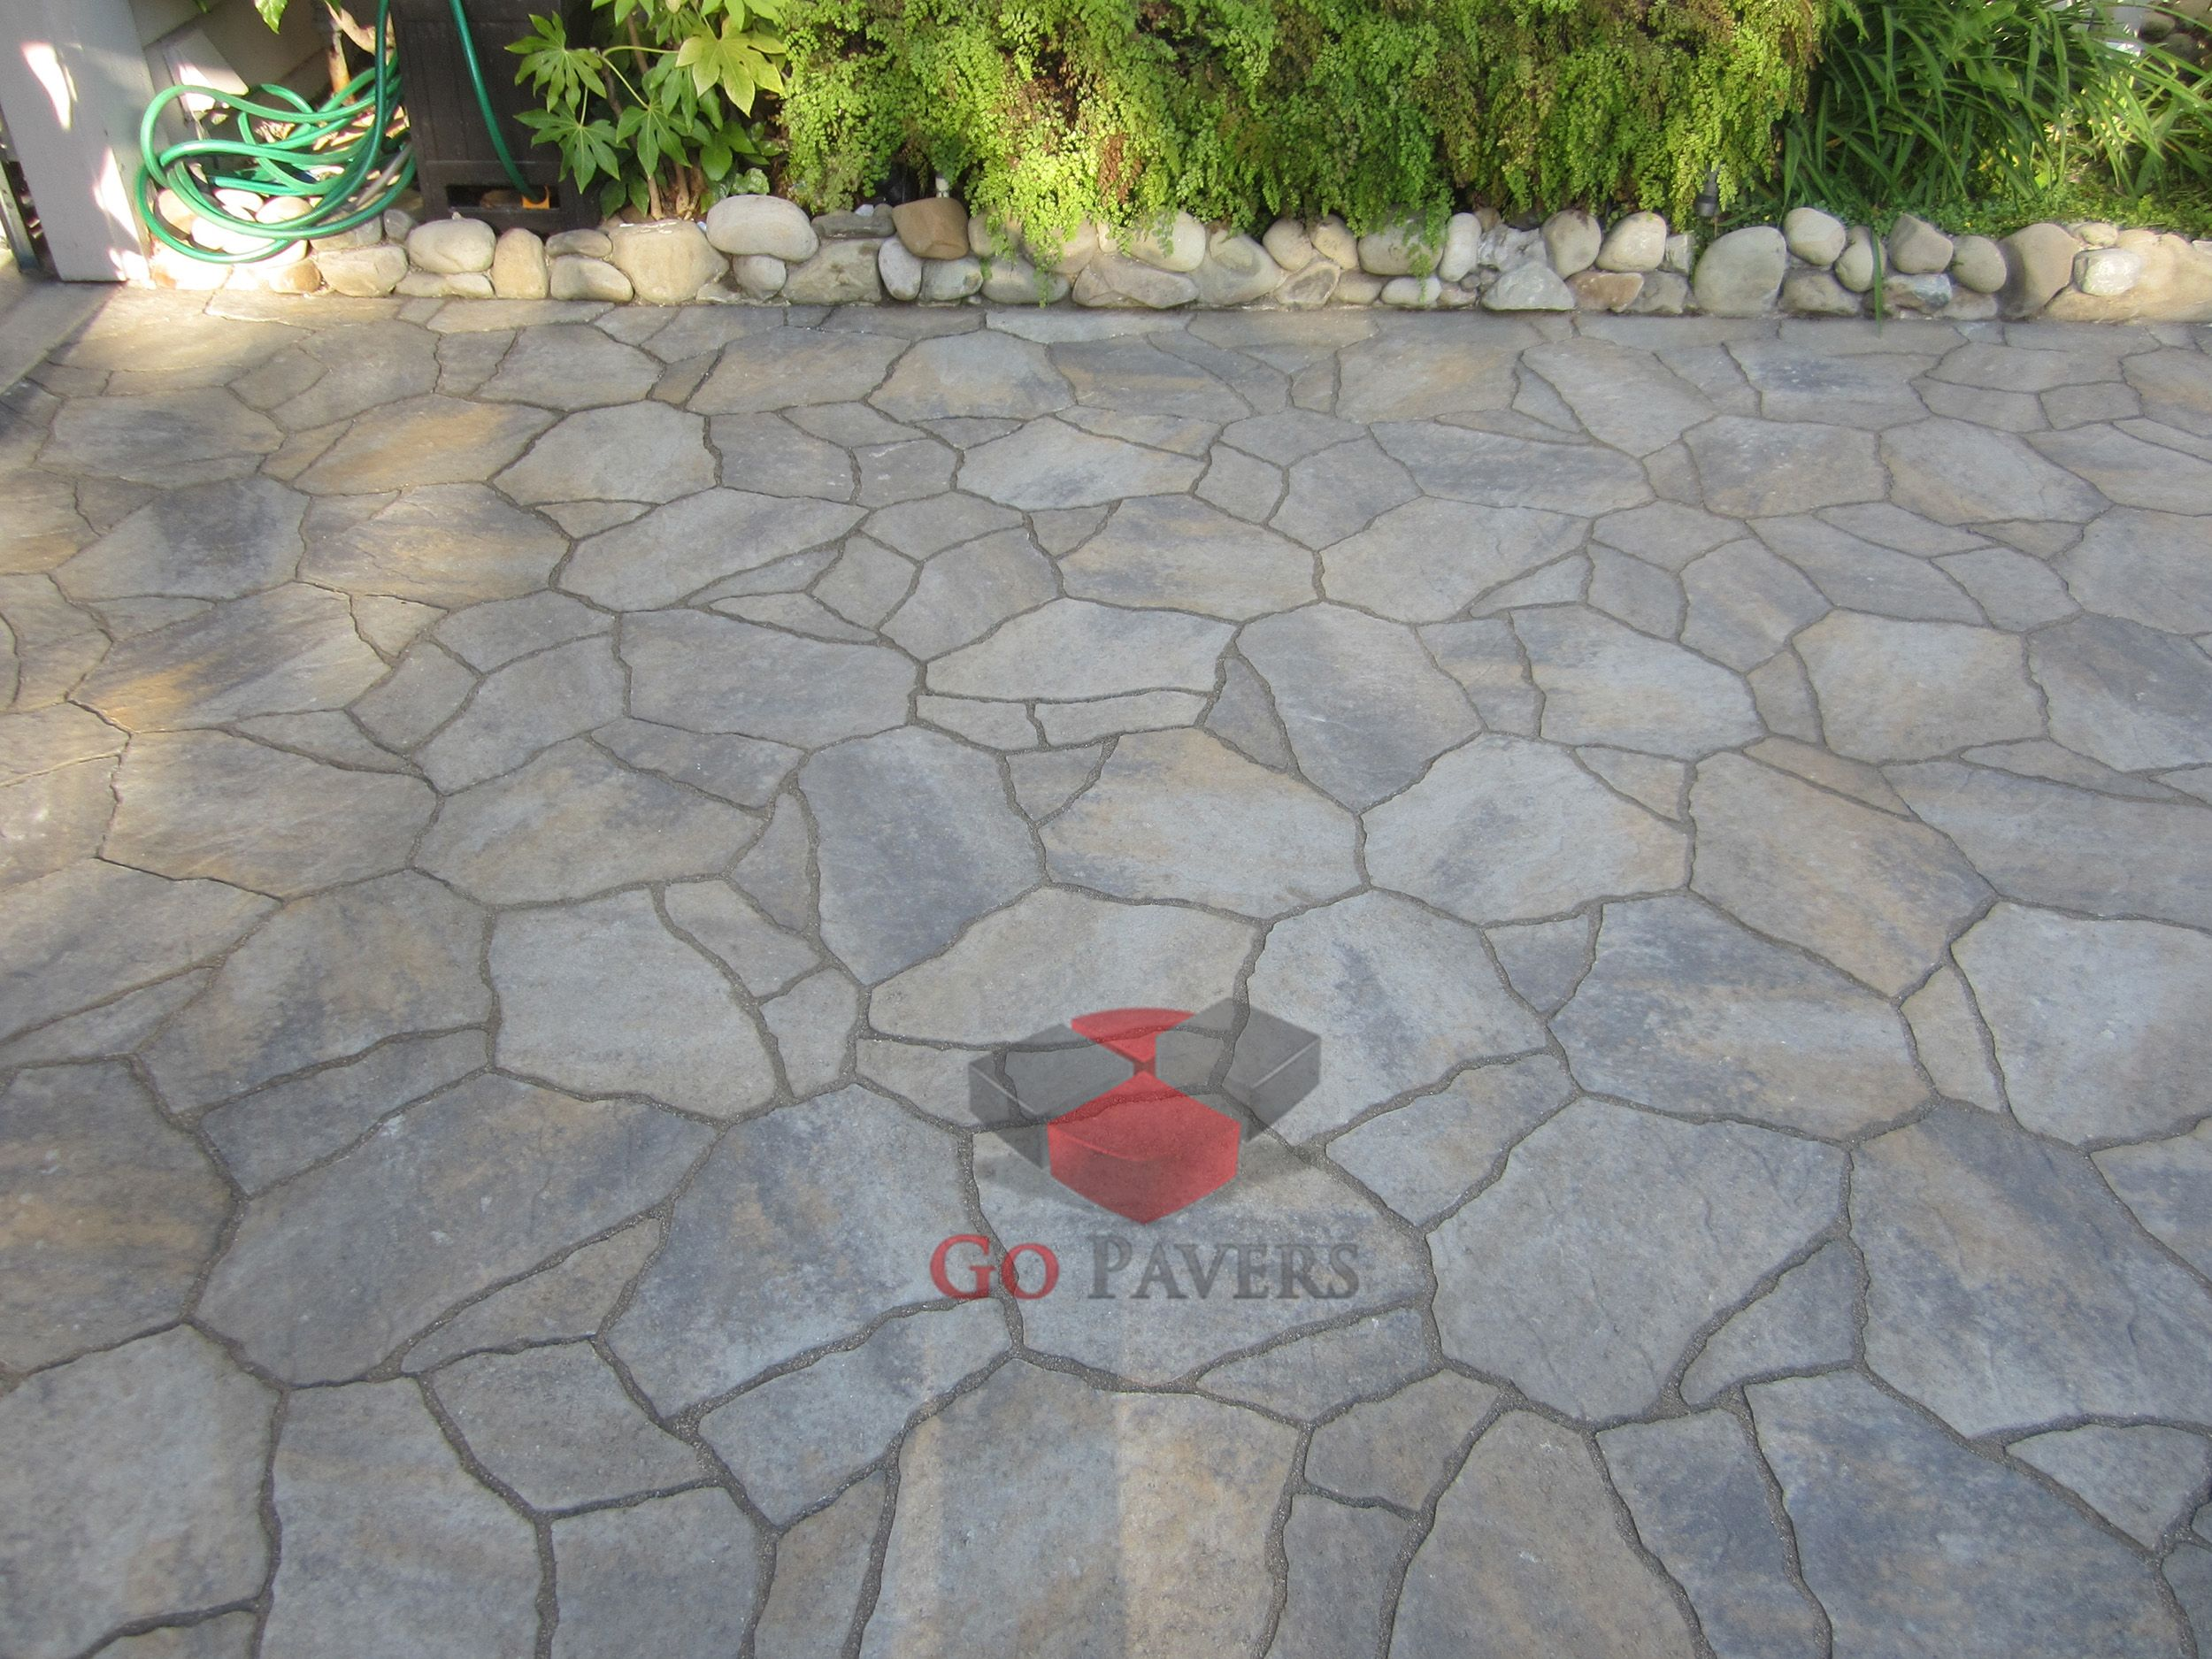 Pavers price per square foot - Go Pavers Makes It Easy For Home Owners To Price Out Their Landscaping Projects By Listing The Cost Of Pavers Per Square Foot Online